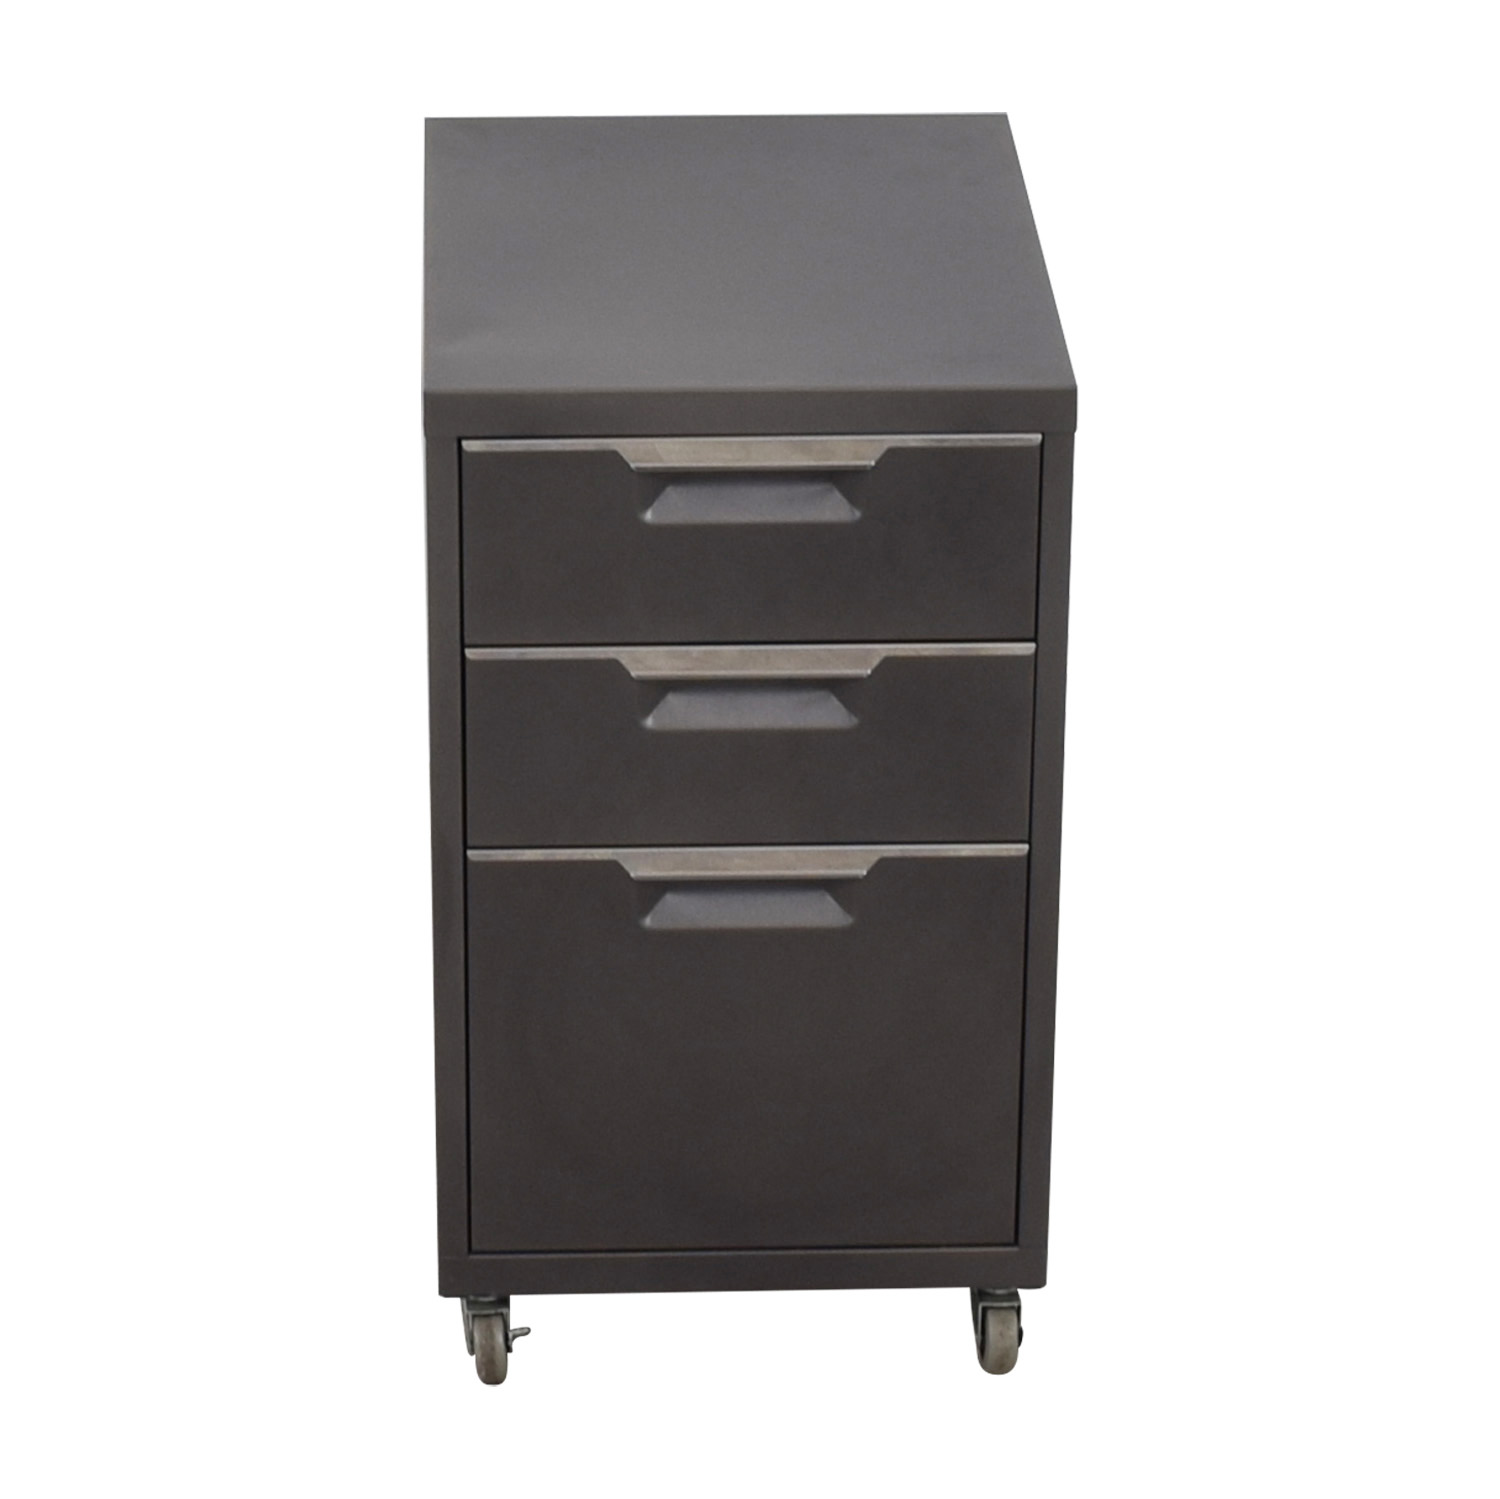 CB2 TPS Carbon 3-Drawer Filing Cabinet sale